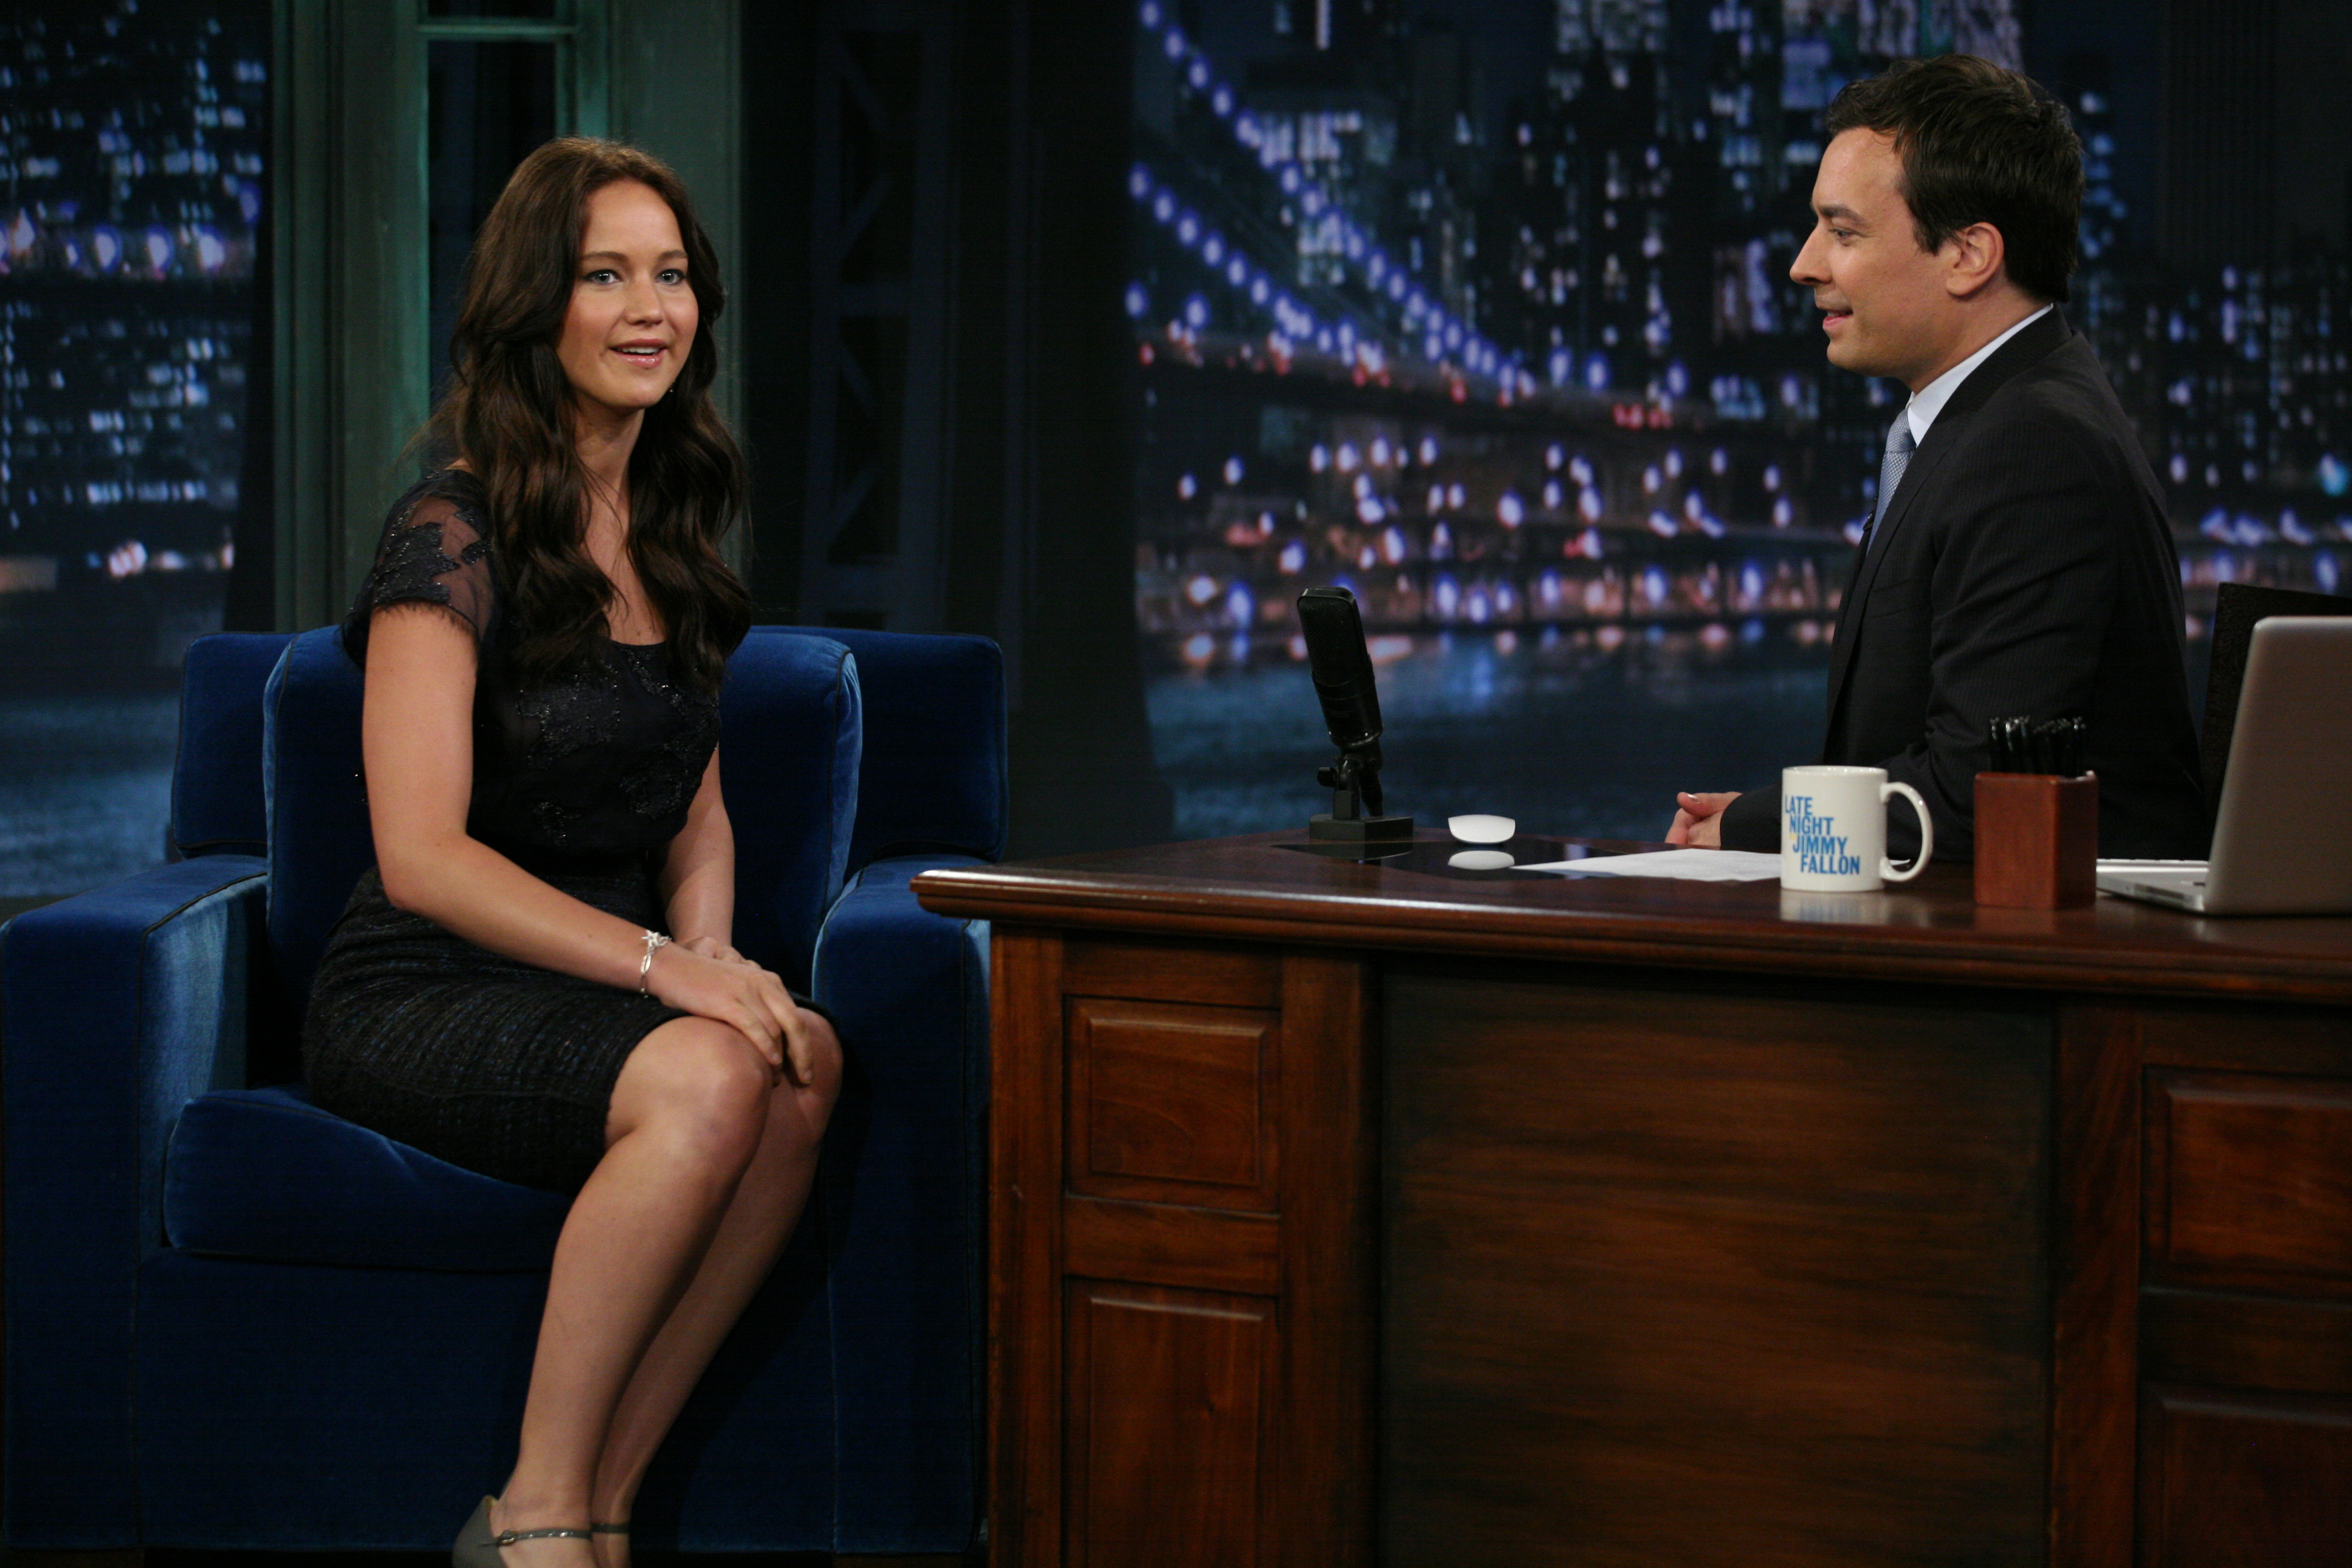 Jennifer Lawrence during an interview with Jimmy Fallon on May 20, 2011.